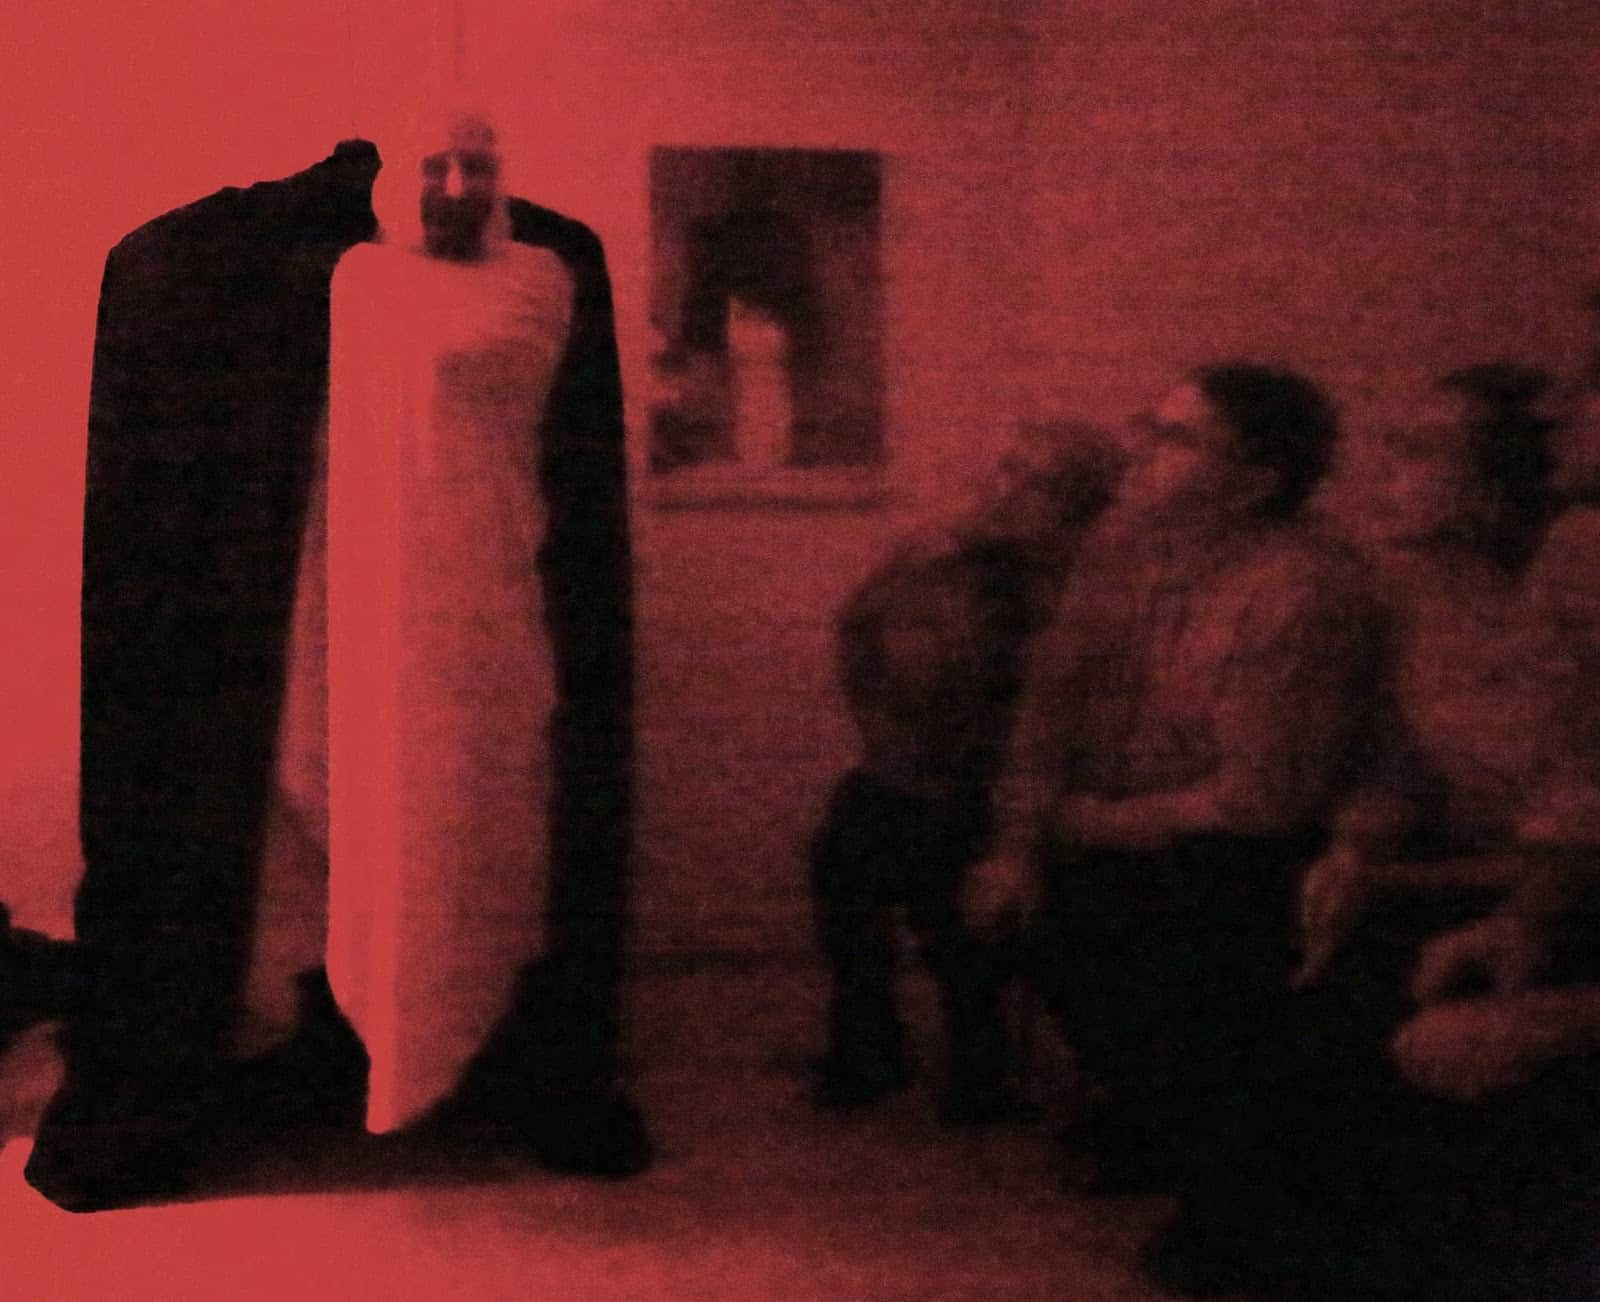 Full Materialization Breakthrough As John King Materializes In Seance 2017 20